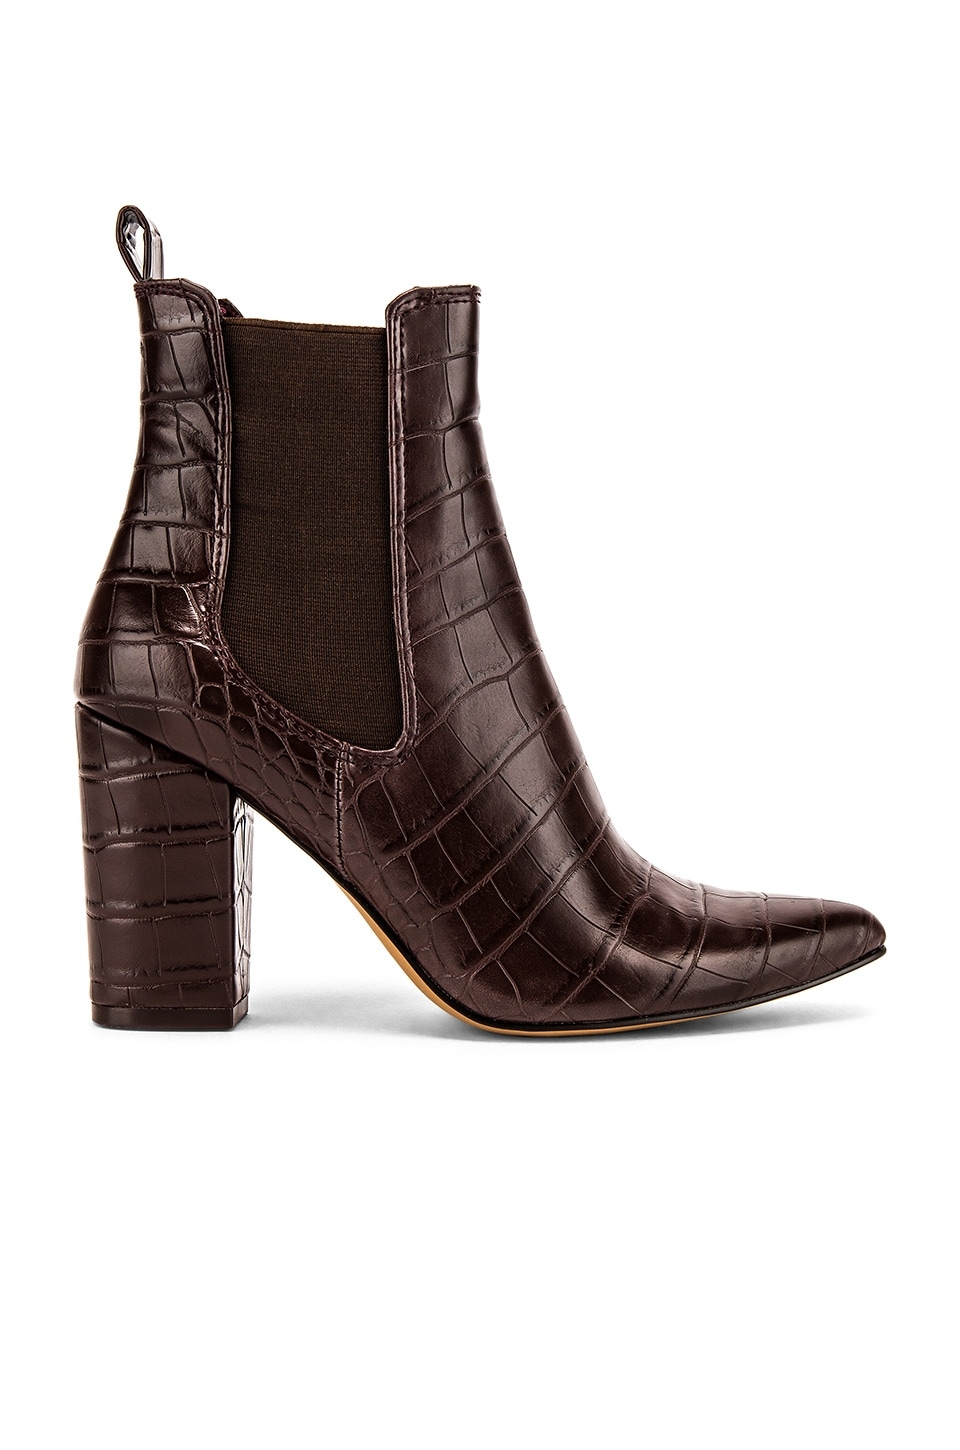 Steve Madden Subtle Bootie in Brown Crocco